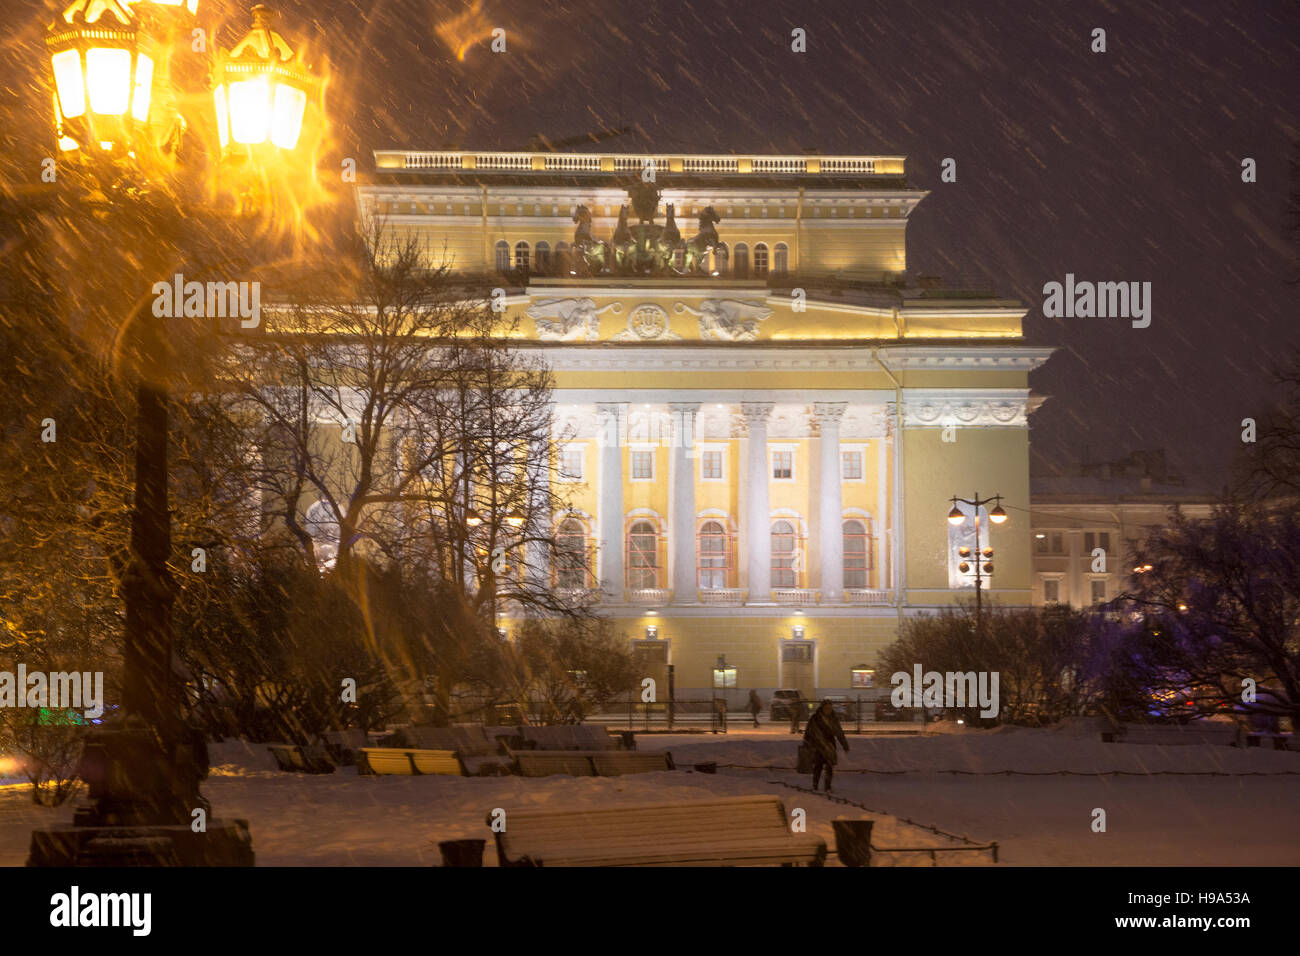 View of facade the Alexandrinsky theatre at the Ostrovsky square at night in Saint Petersburg, Russia - Stock Image